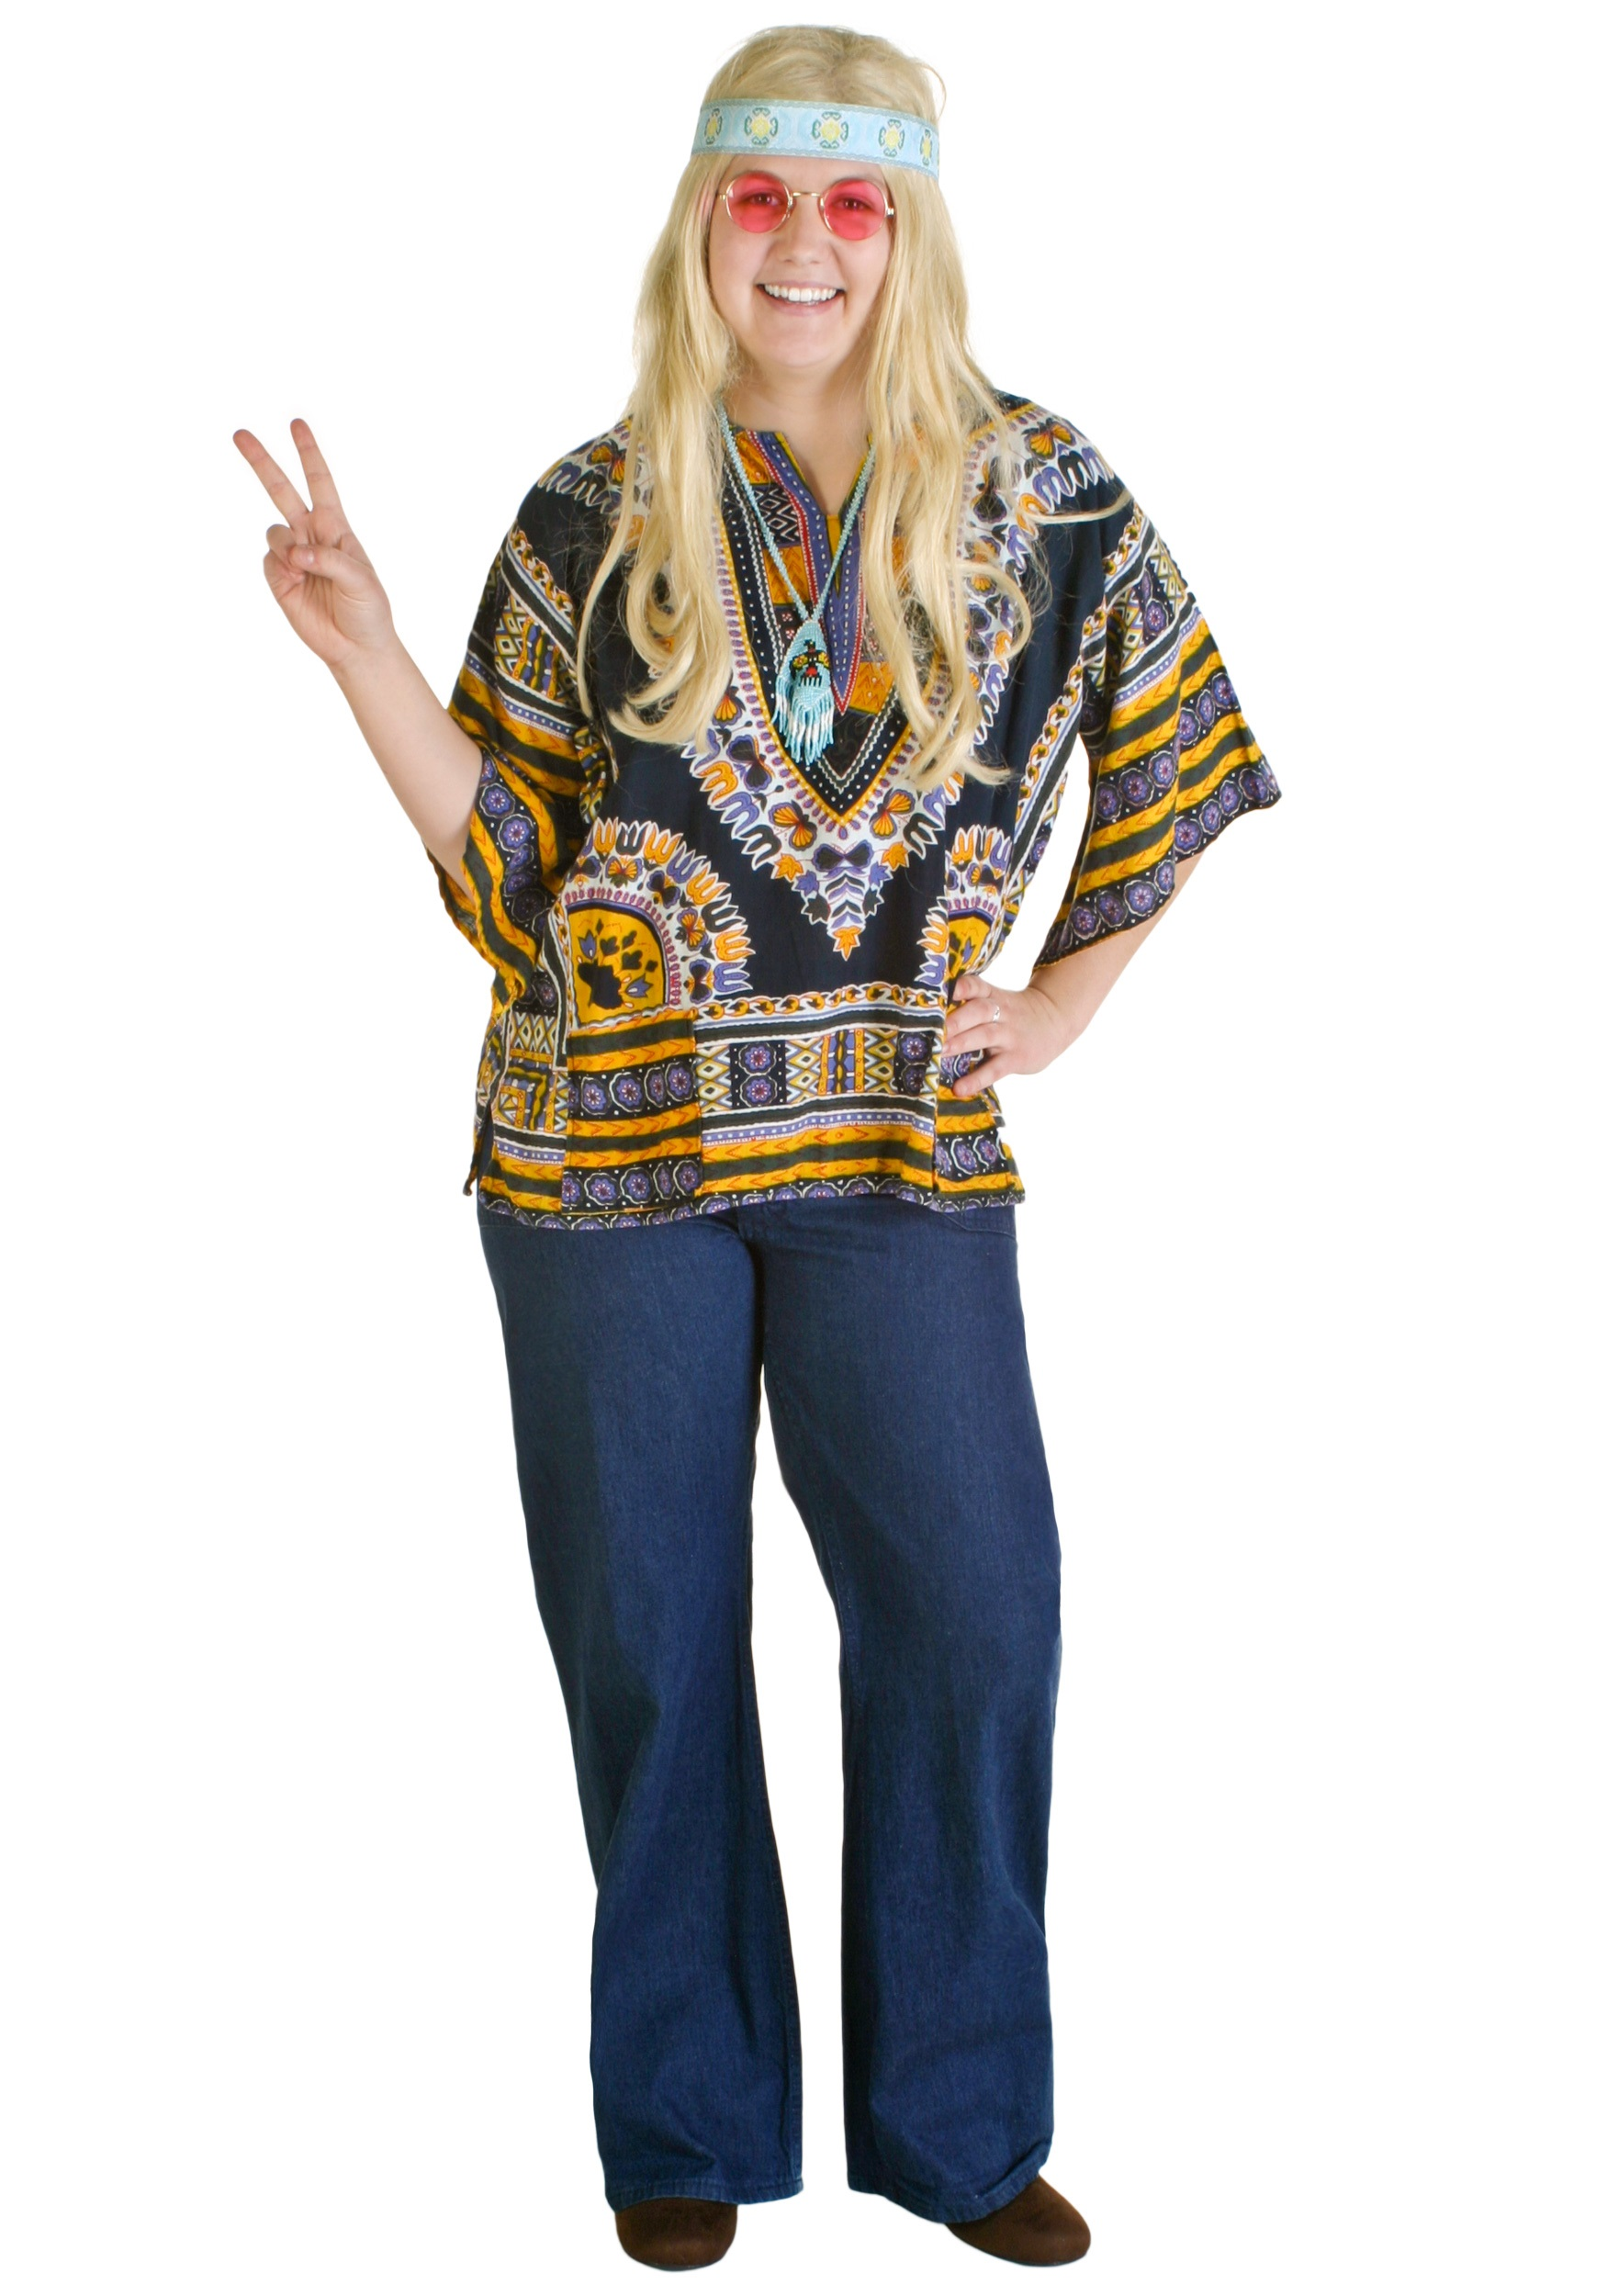 1980s Fashion Hippies Images Galleries With A Bite